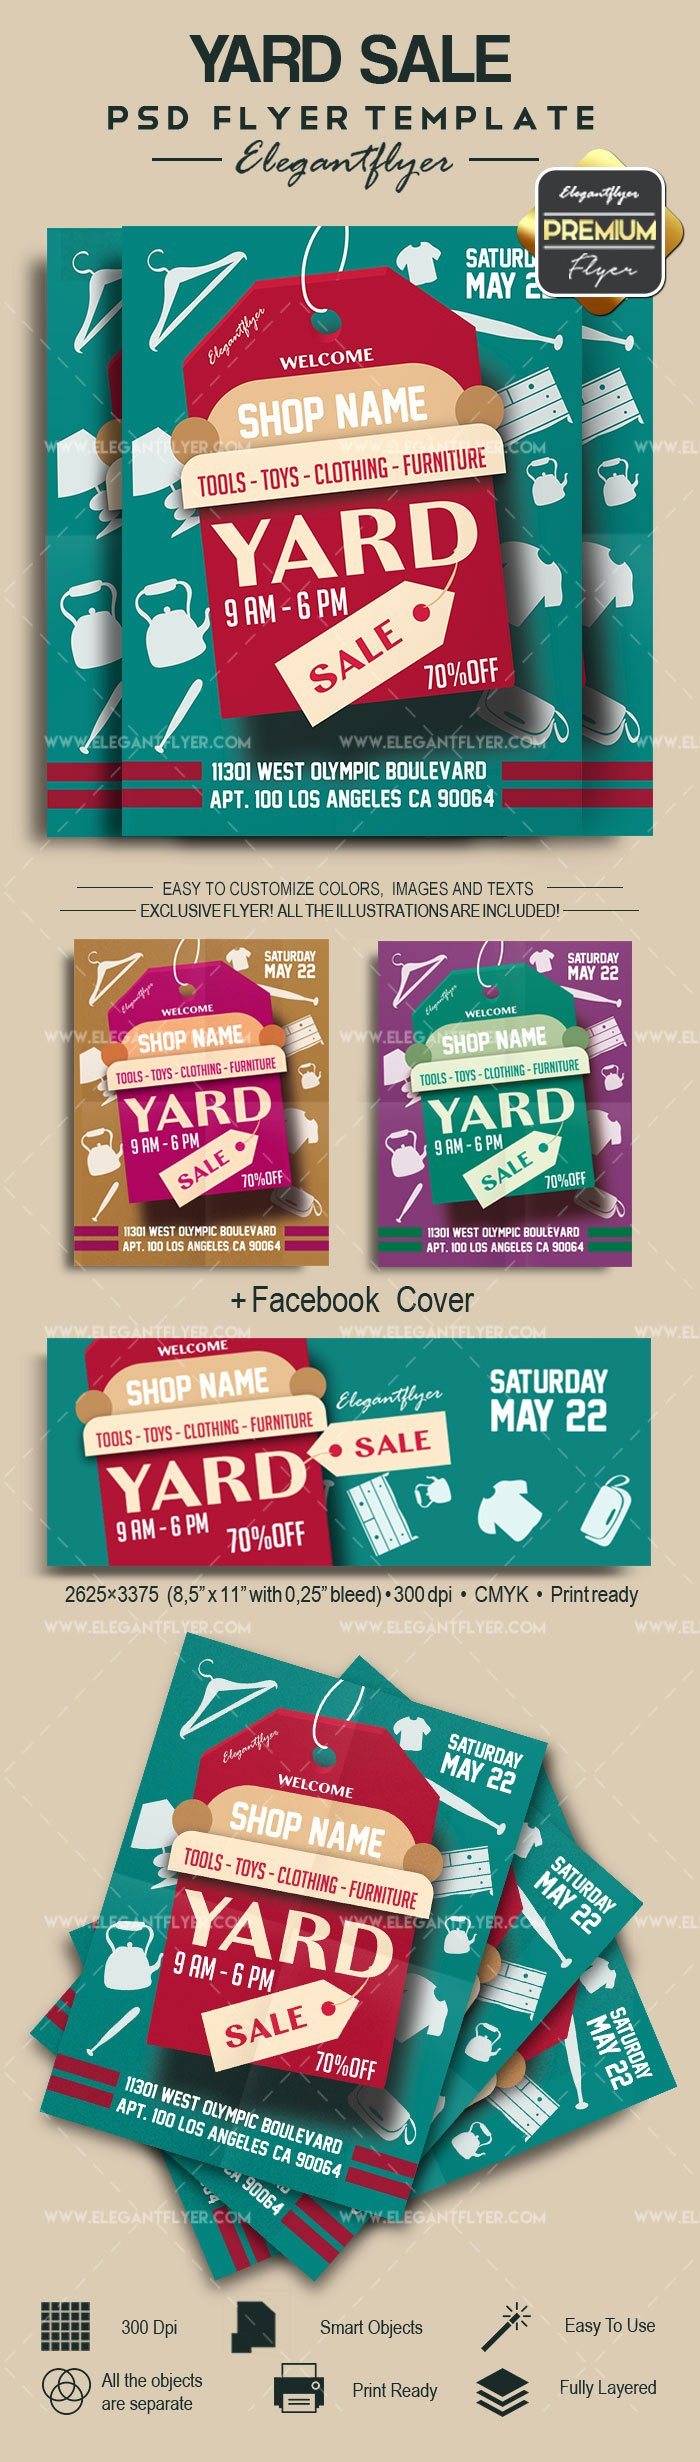 Yard Sale Flyer Template Beautiful Yard Sale – Flyer Psd Template – by Elegantflyer